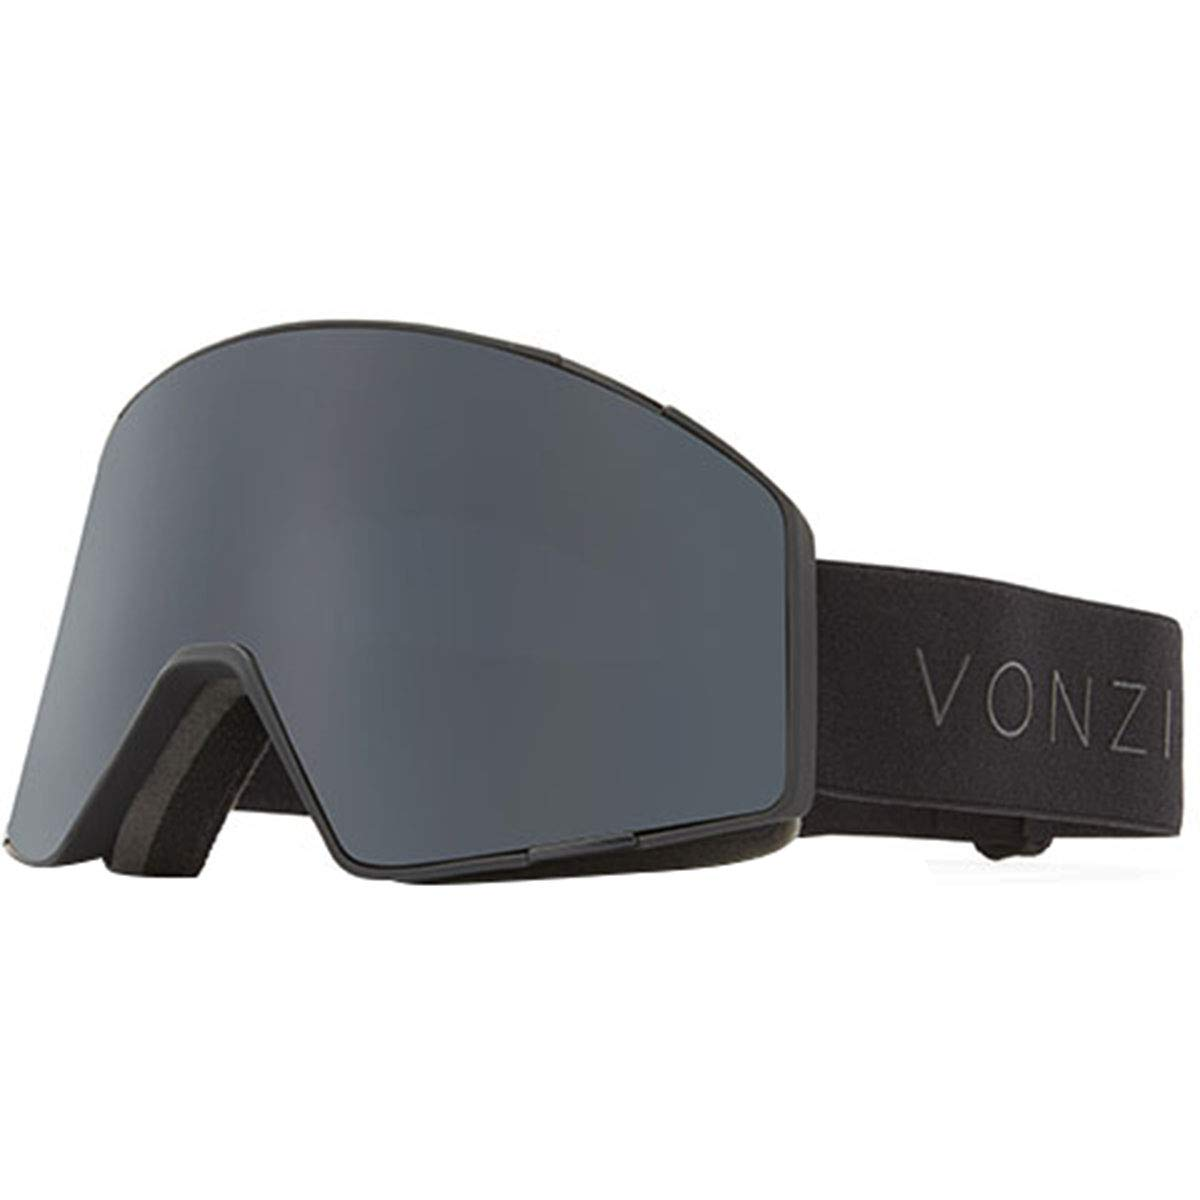 VonZipper Capsule Adult Snowmobile Goggles - Black Satin/Wild Blackout/One Size